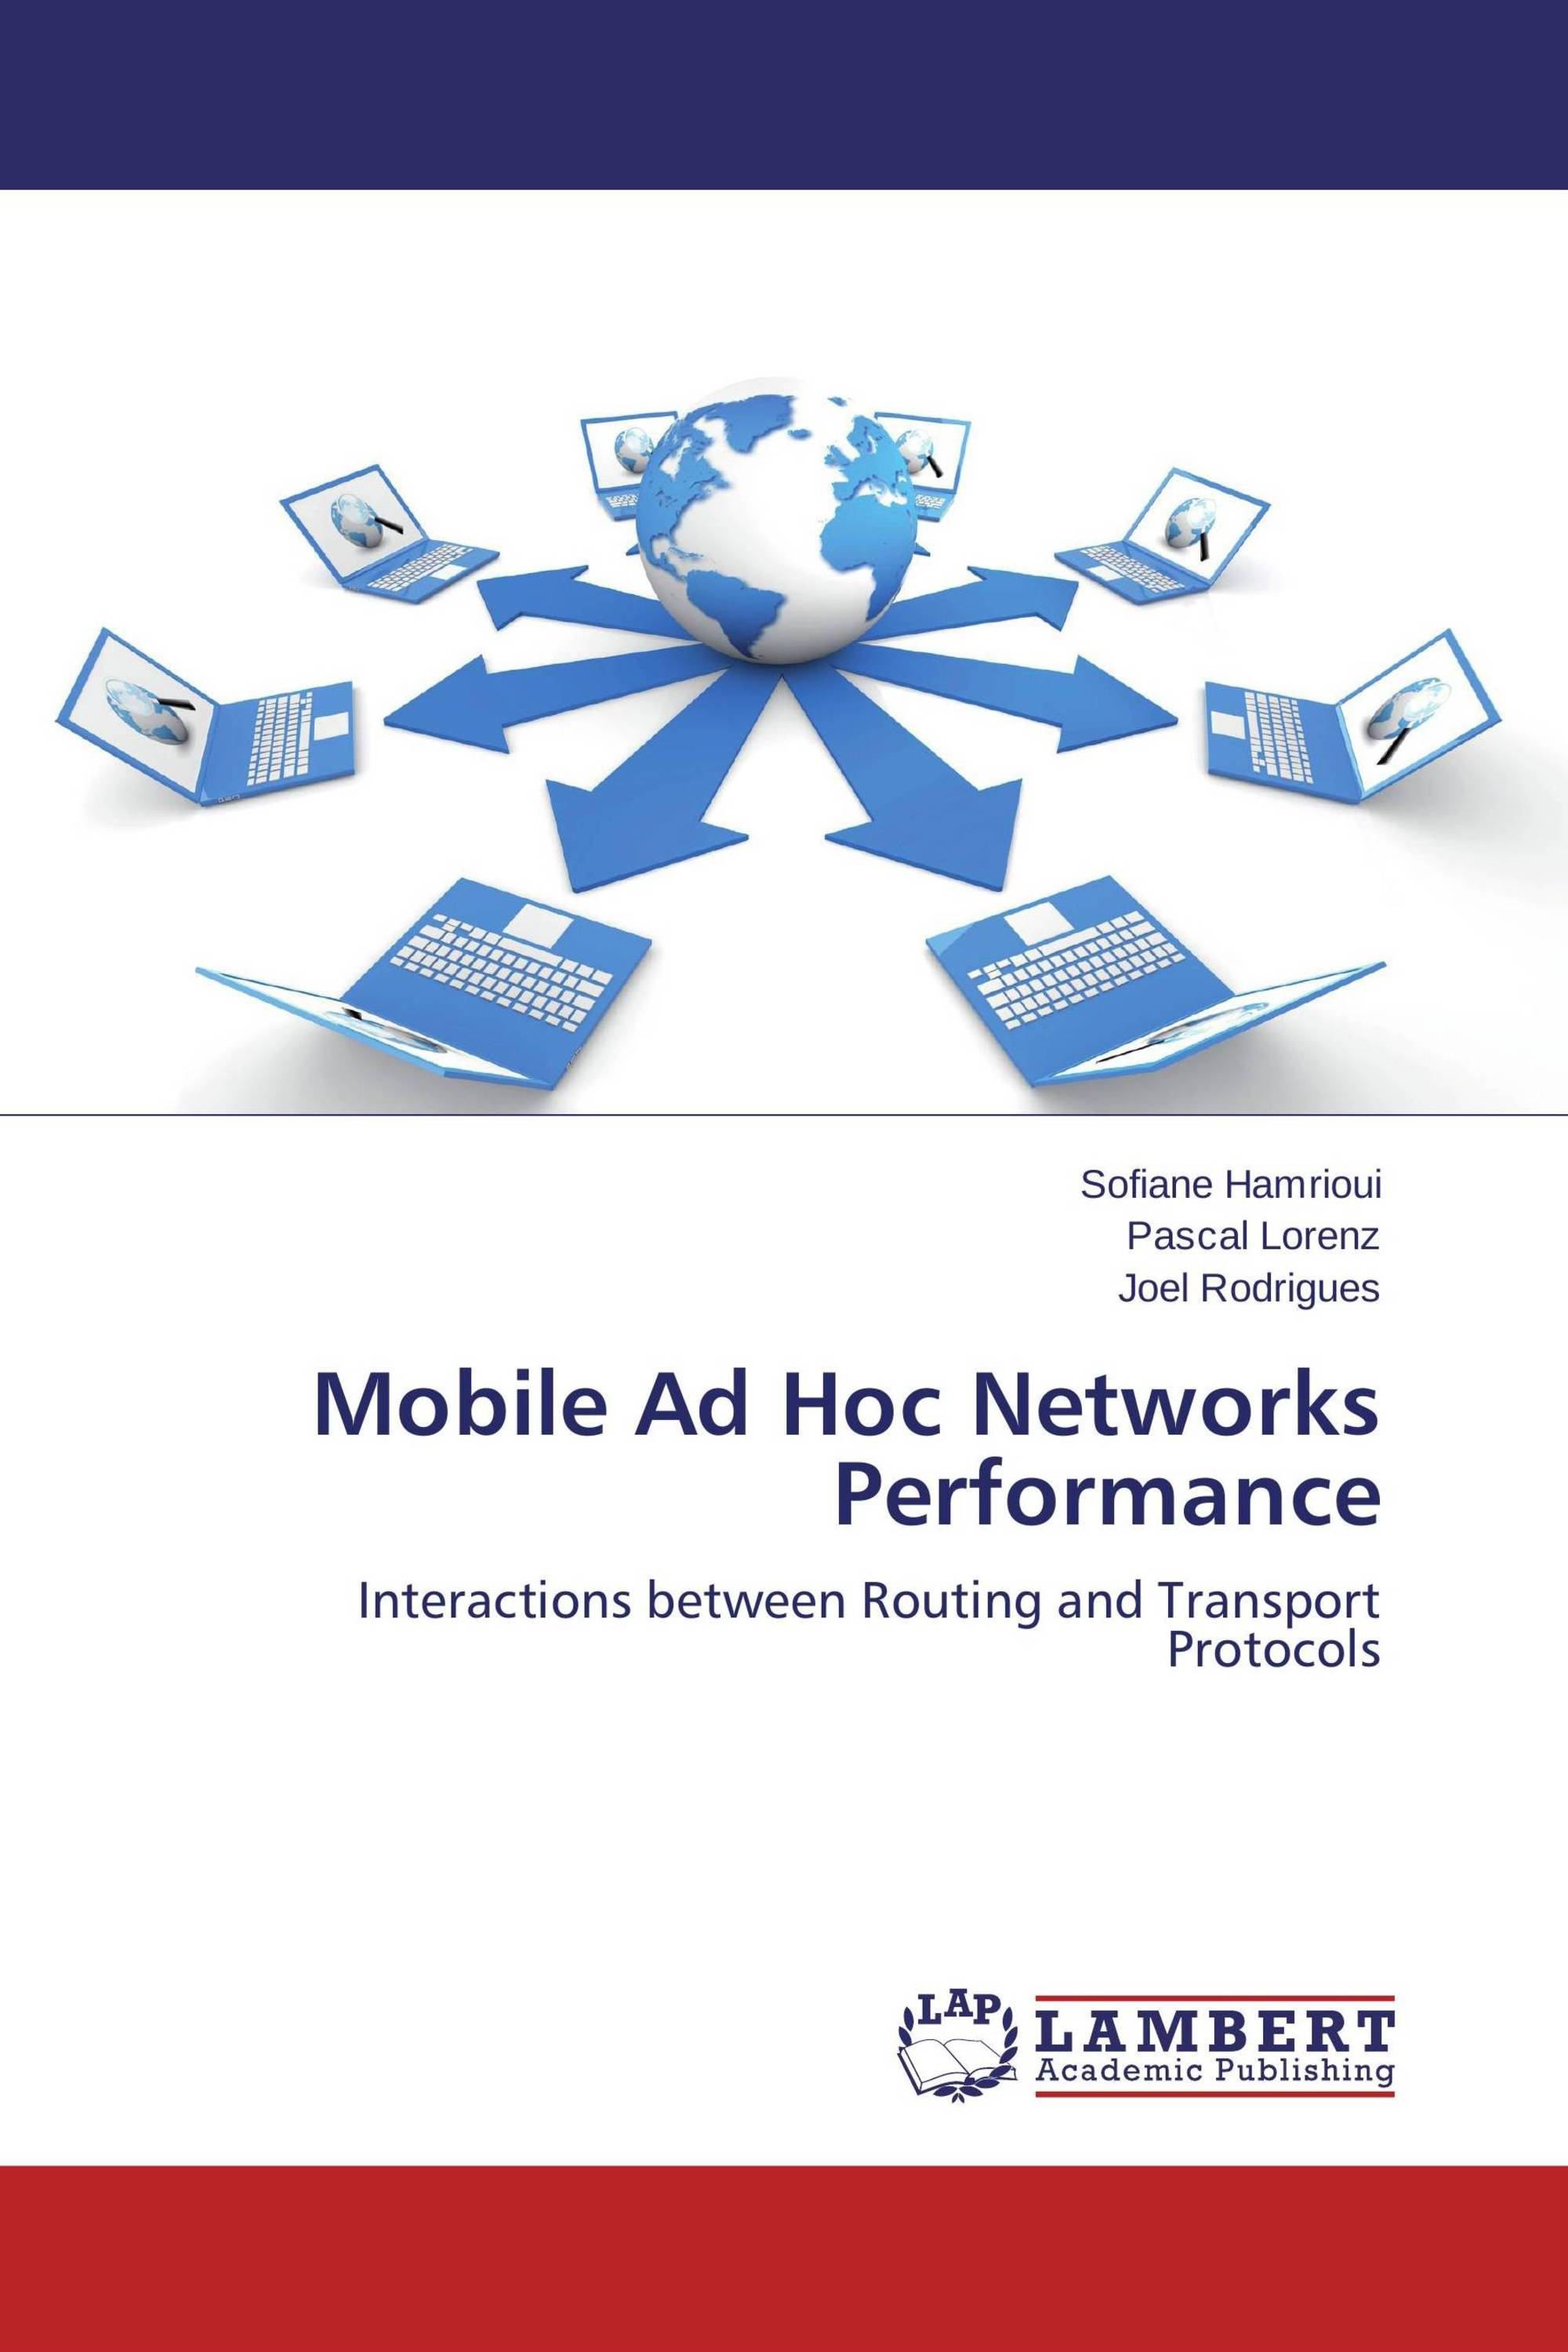 Mobile Ad Hoc Networks Performance